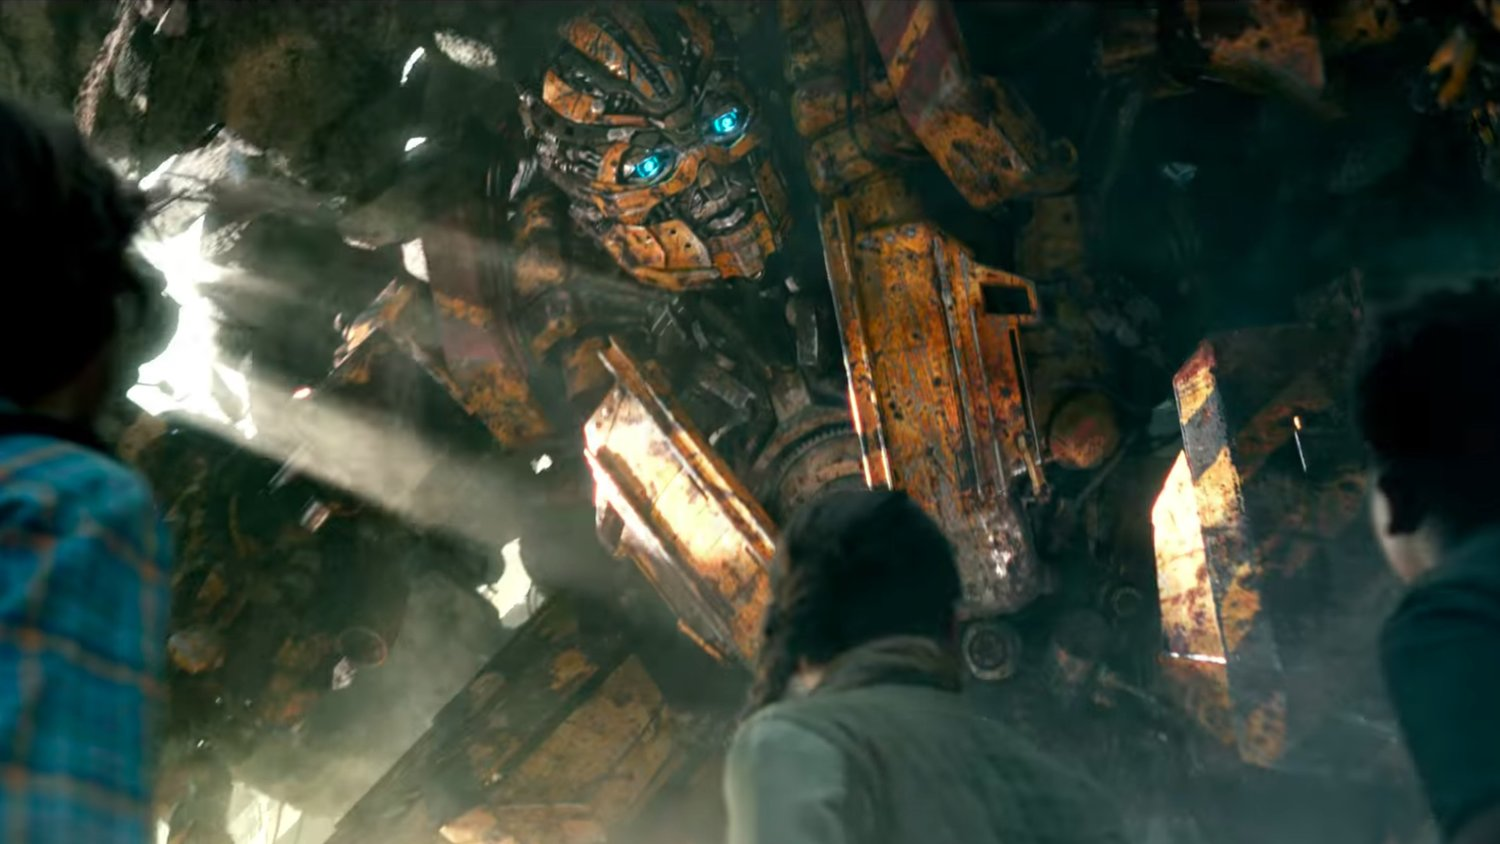 TRANSFORMERS: THE LAST KNIGHT Clip and TV Spot Feature Kids on the Run and Grimlock Coughing Up Cars